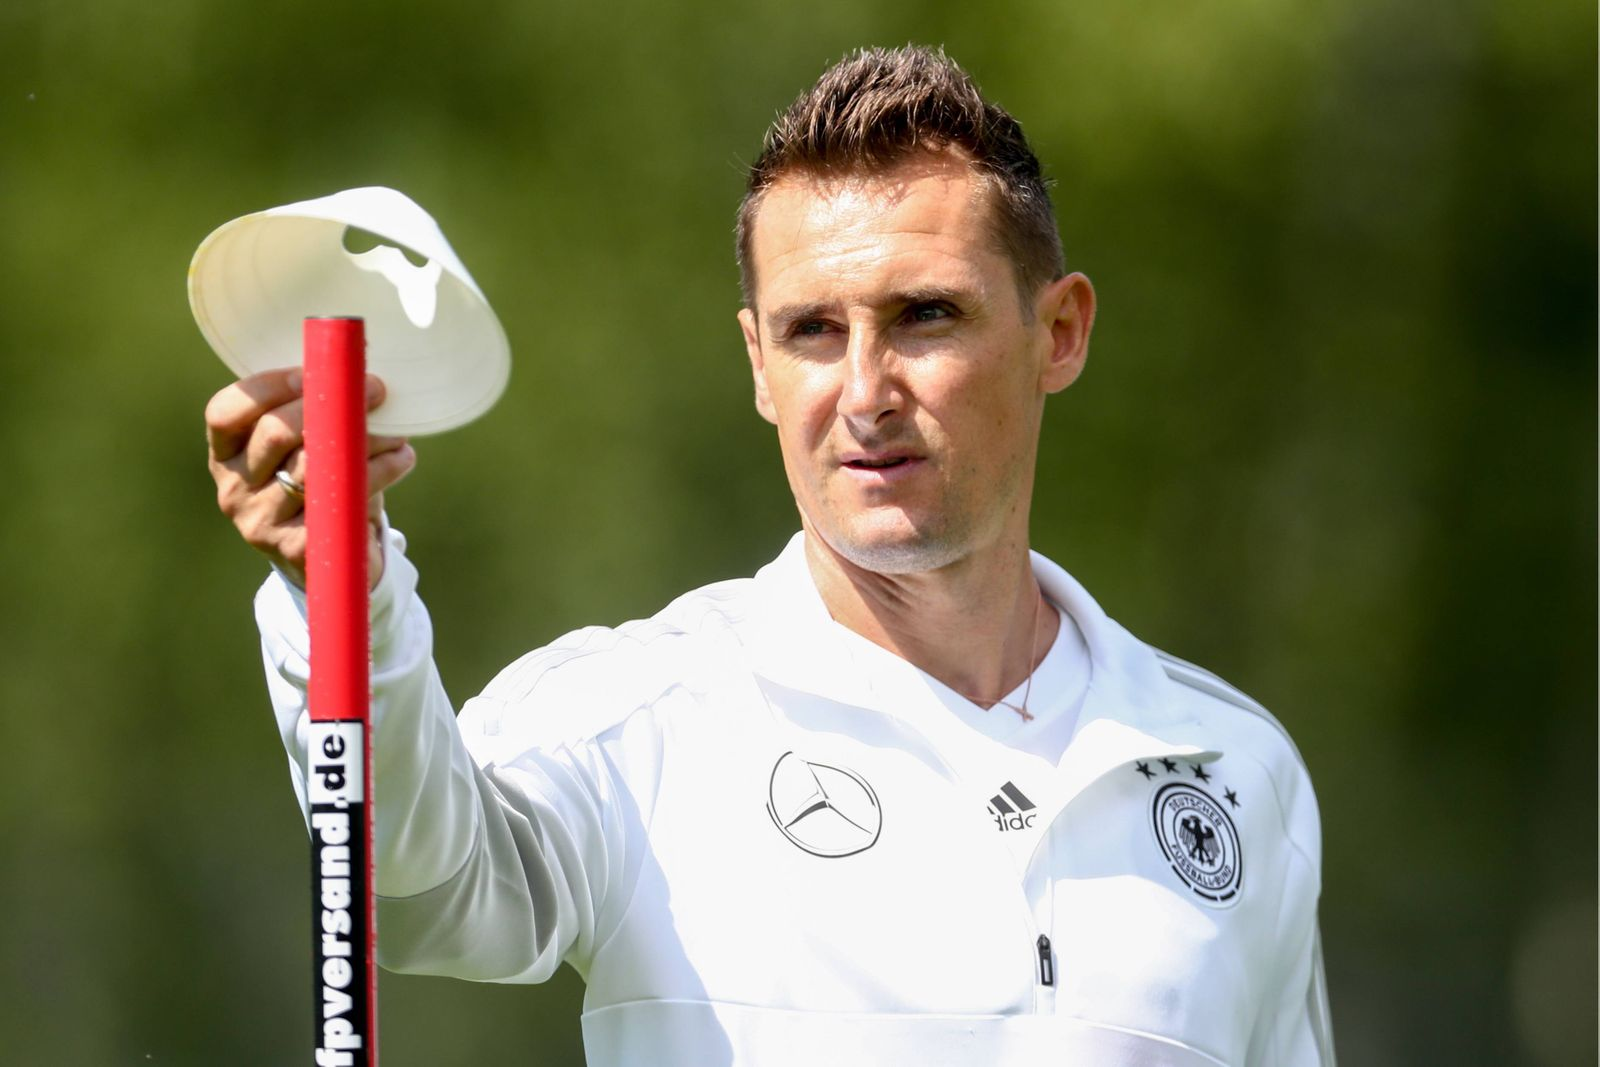 MOSCOW, RUSSIA - JUNE 13, 2018: German retired footballer Miroslav Klose attends a training session of the German men s